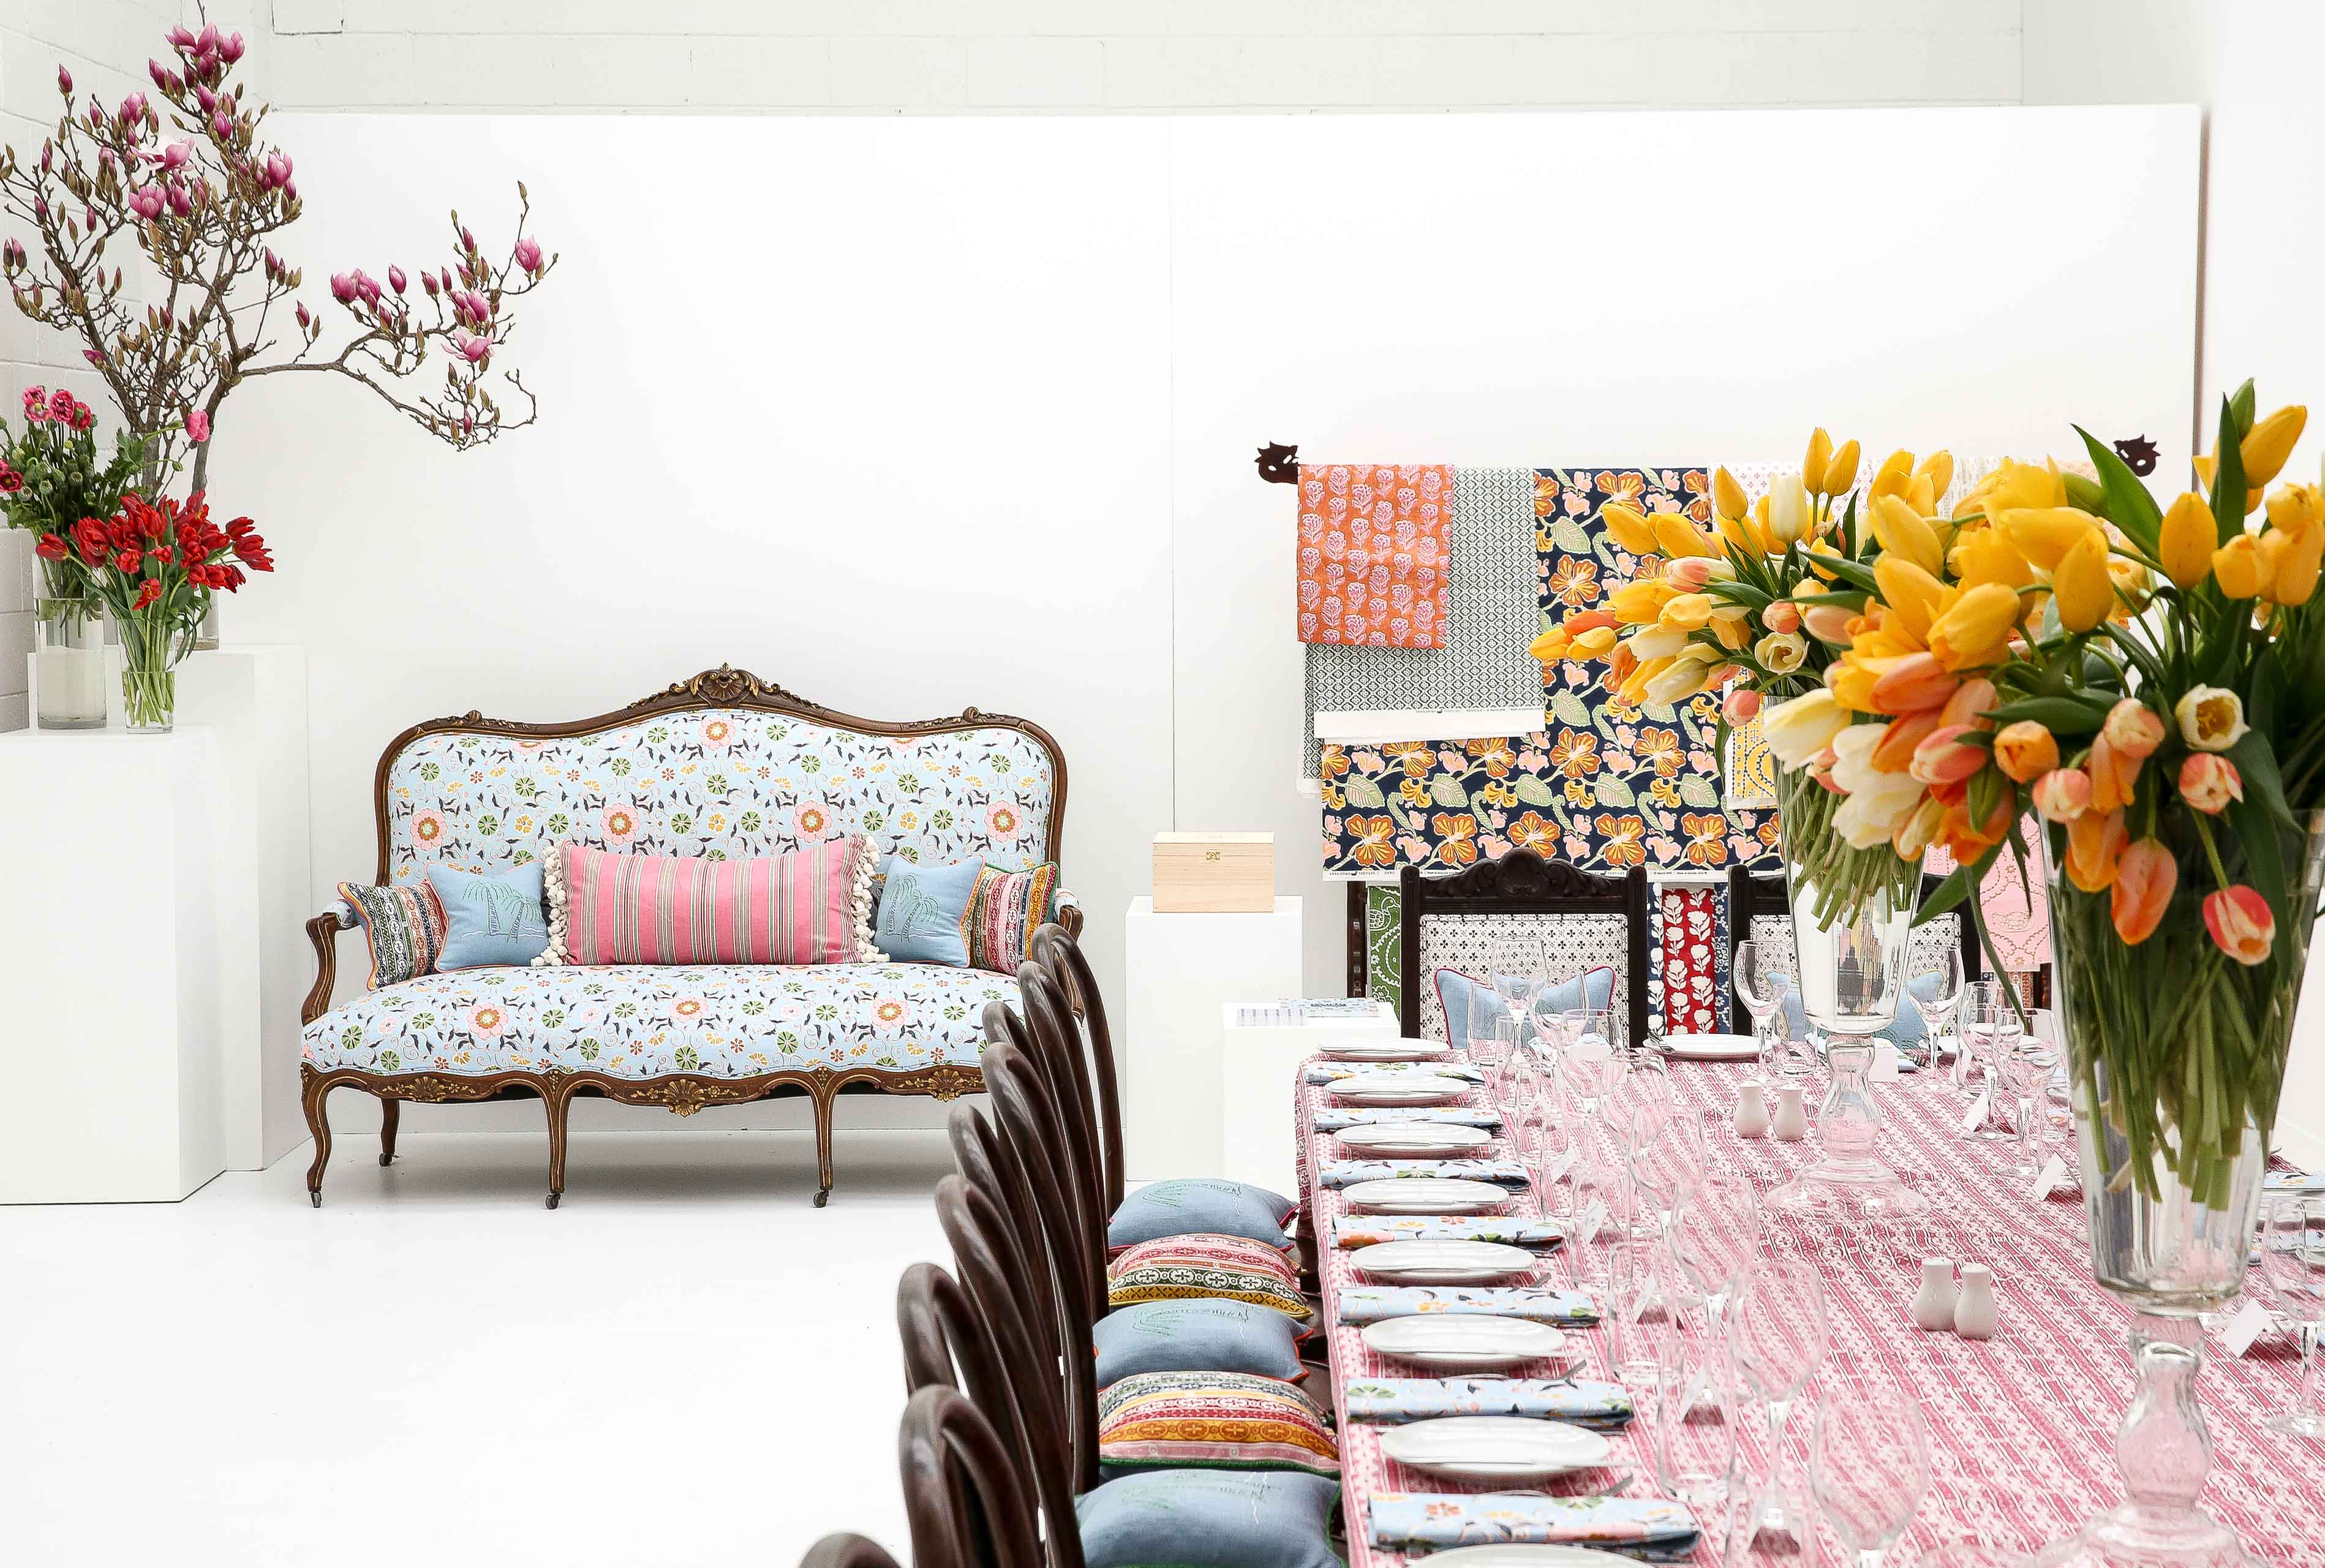 Anna Spiro launches her first textiles collection